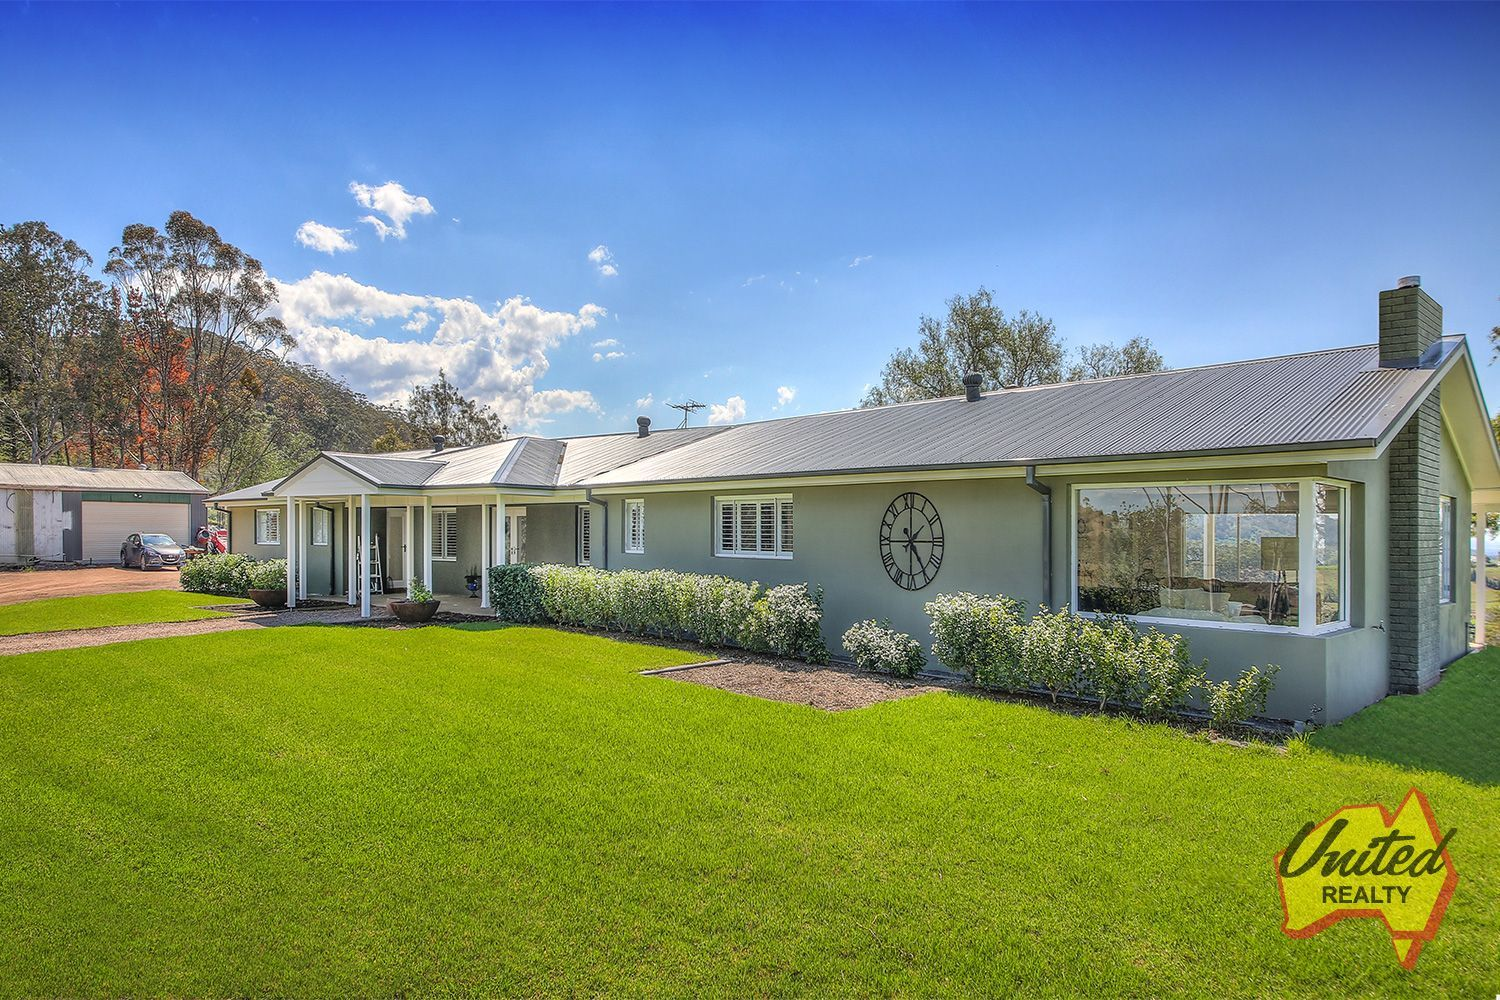 300 Carrolls Road Menangle 2568